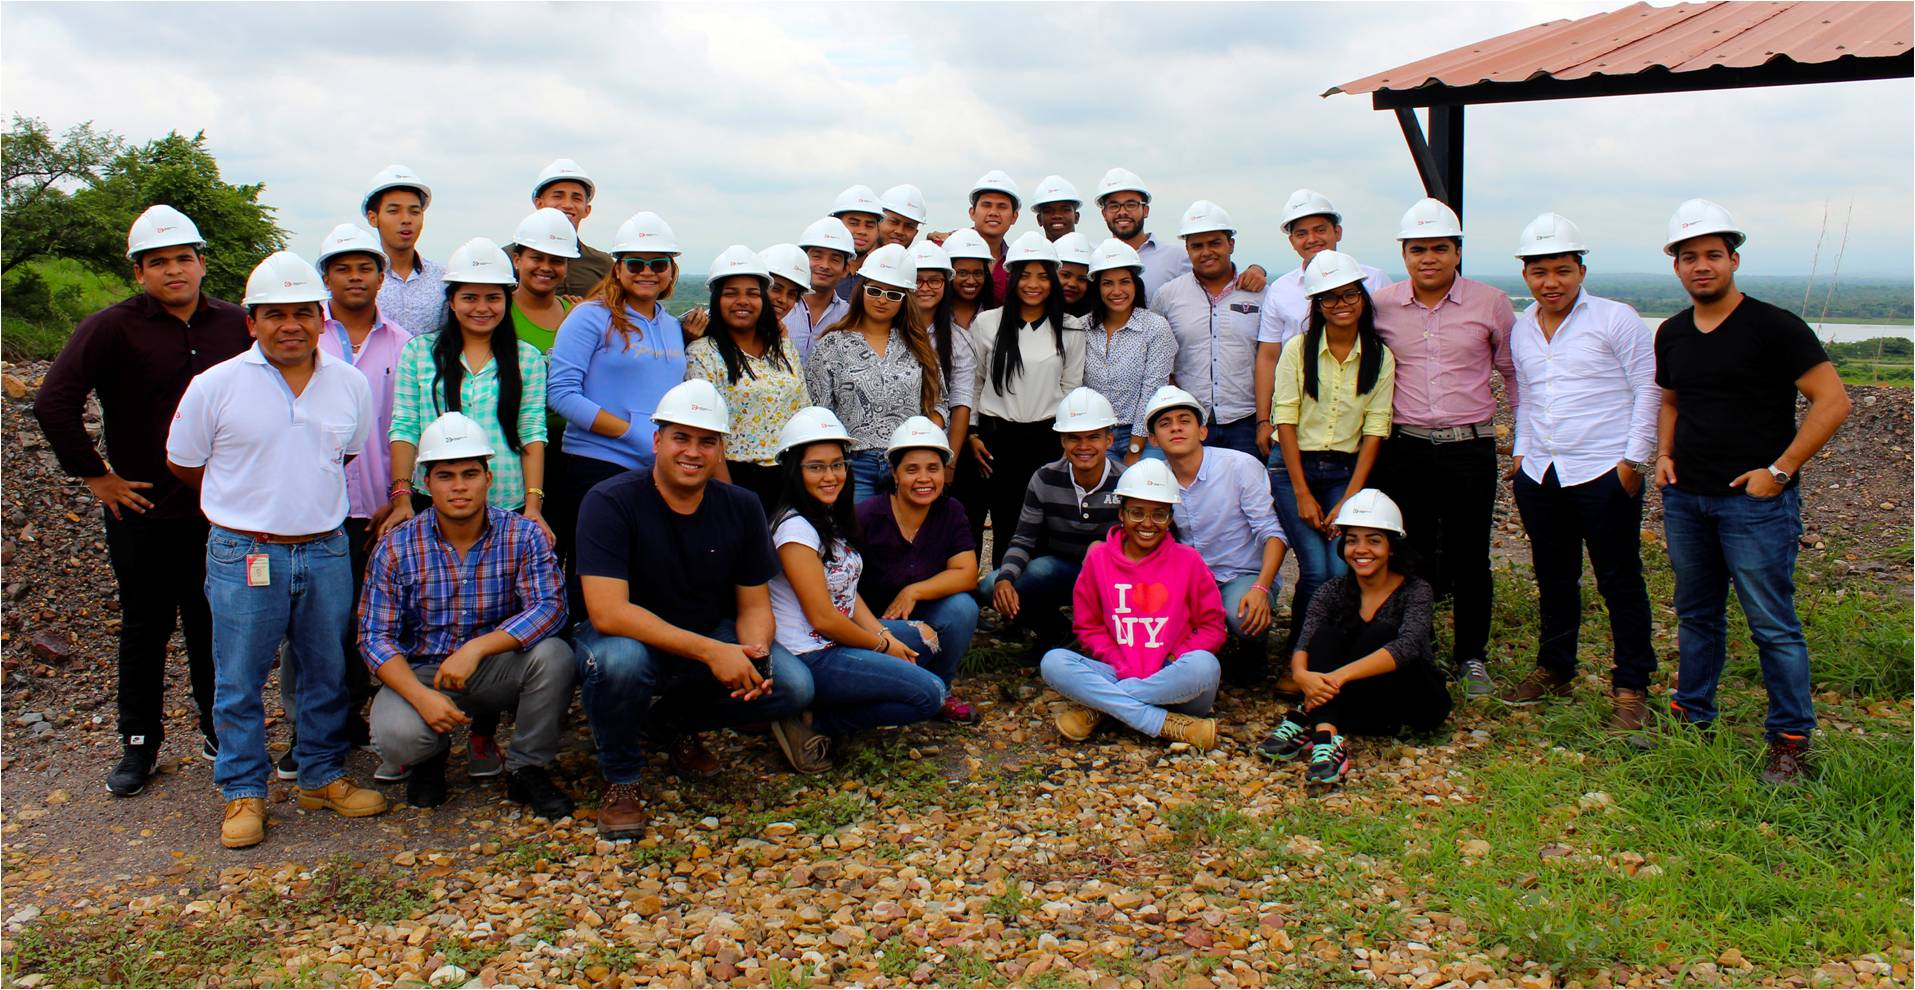 Students from the Universidad de la Costa by ramp 7's lookout point